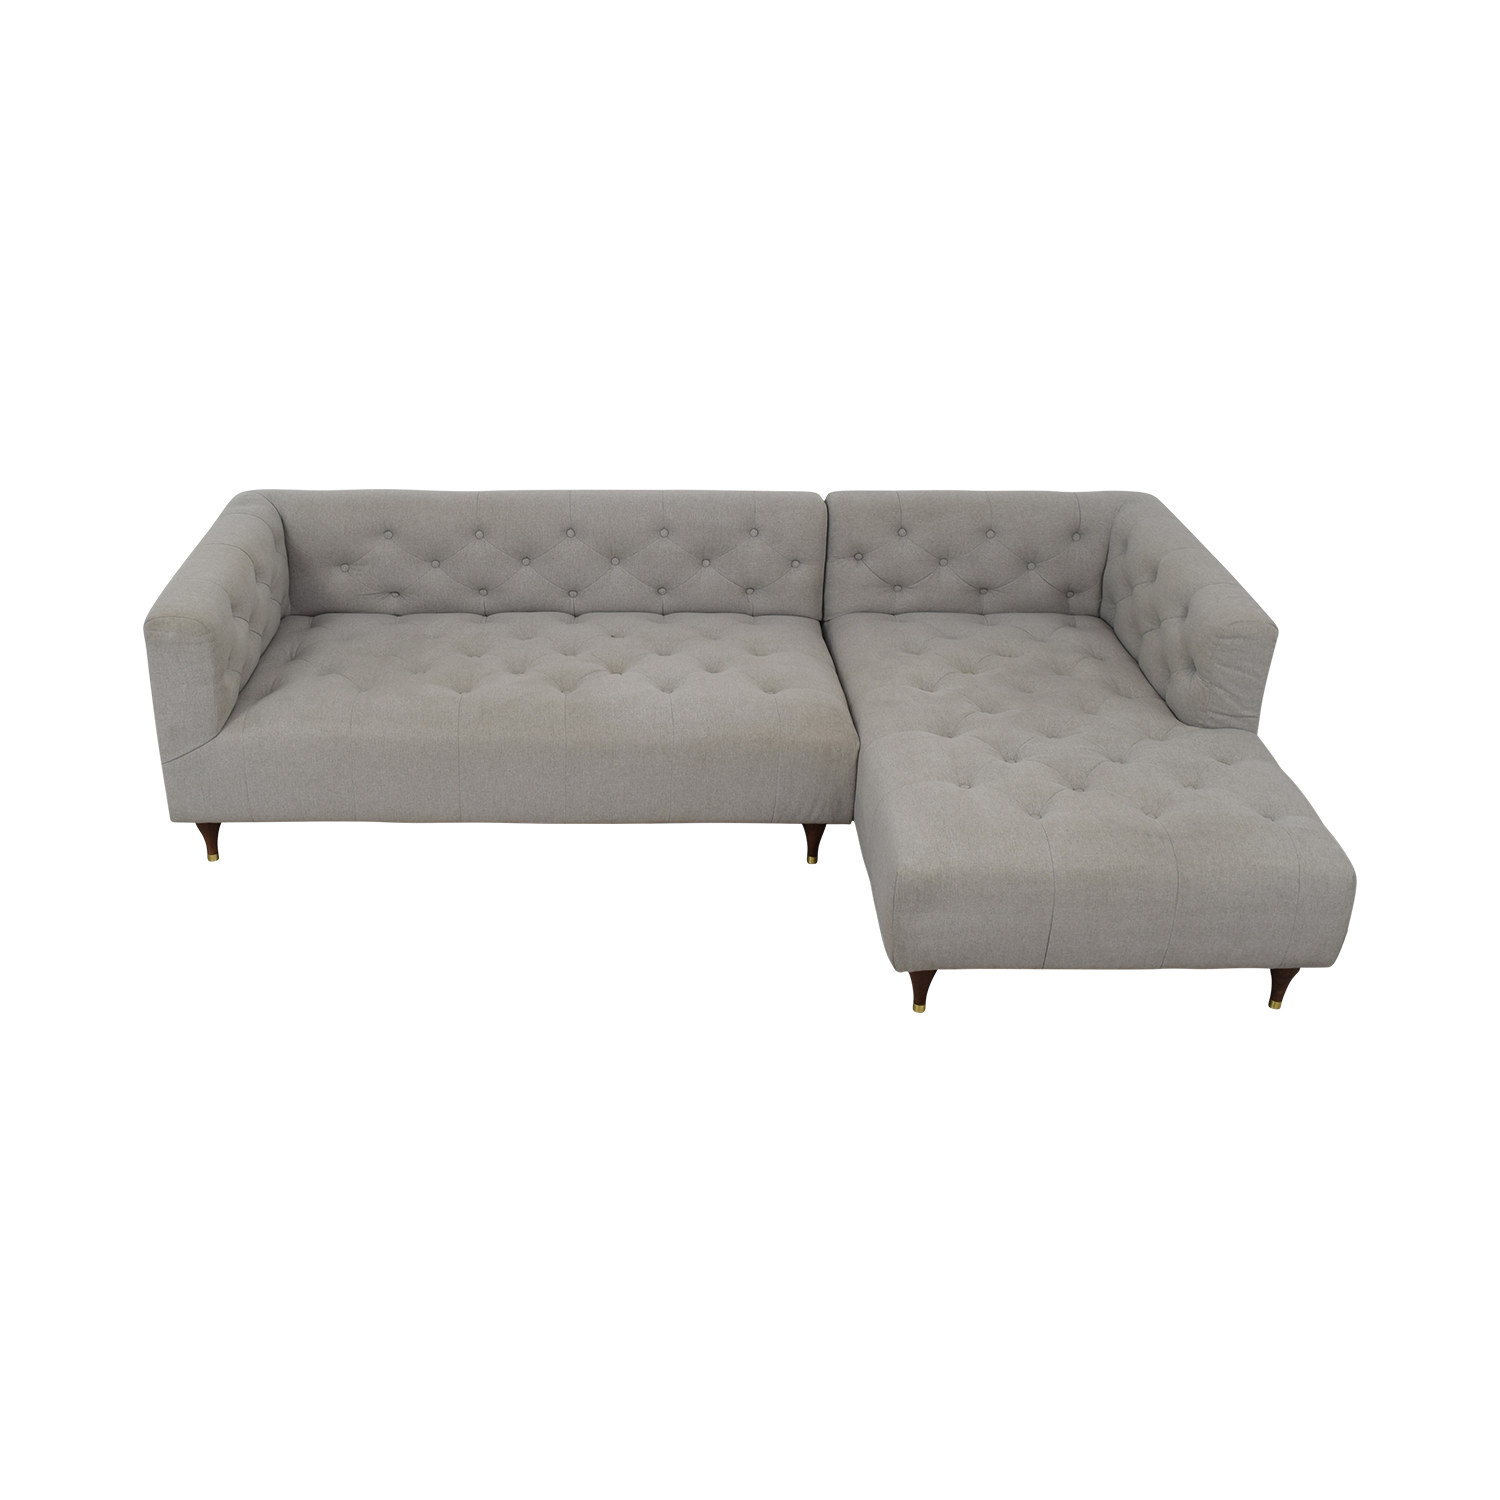 Ms. Chesterfield Grey Plush Right Chaise Sectional for sale